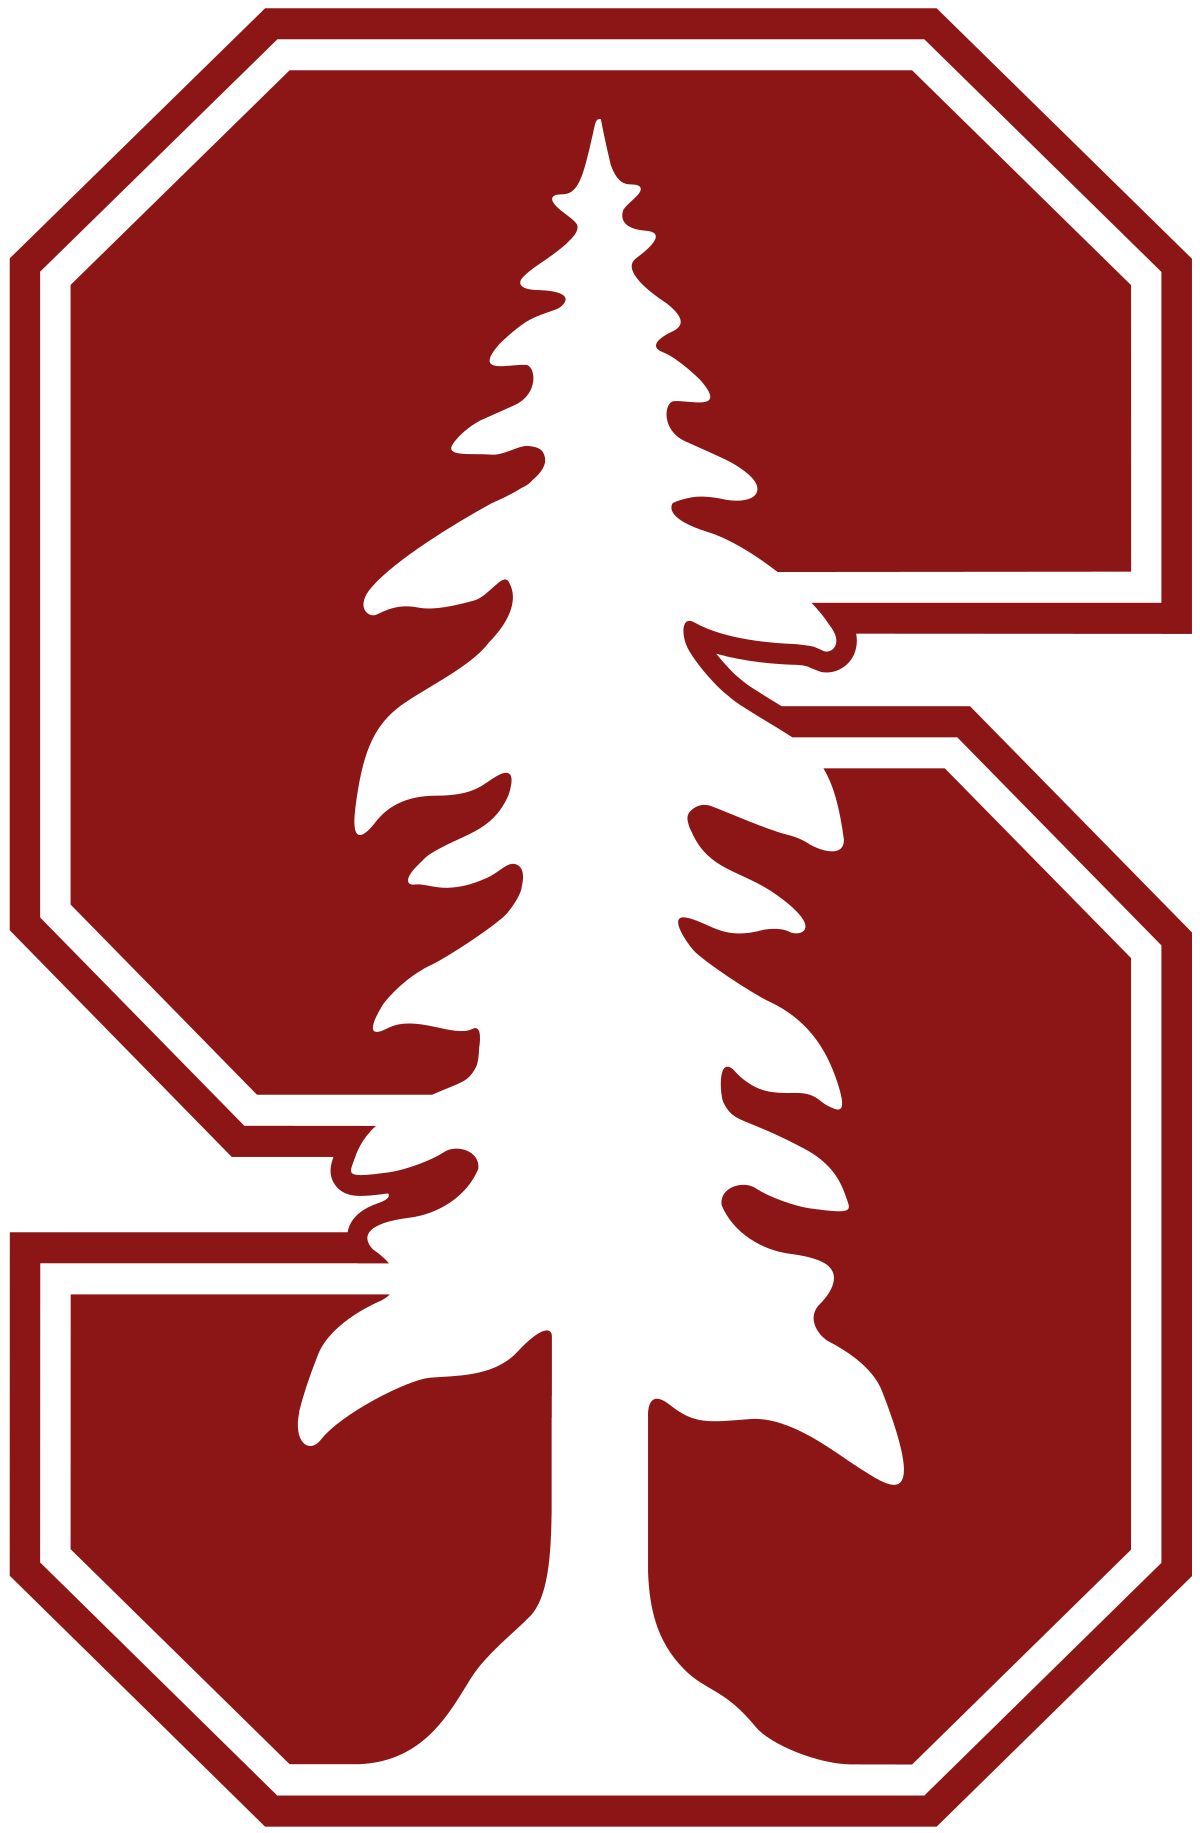 2003 Stanford Cardinal baseball team.